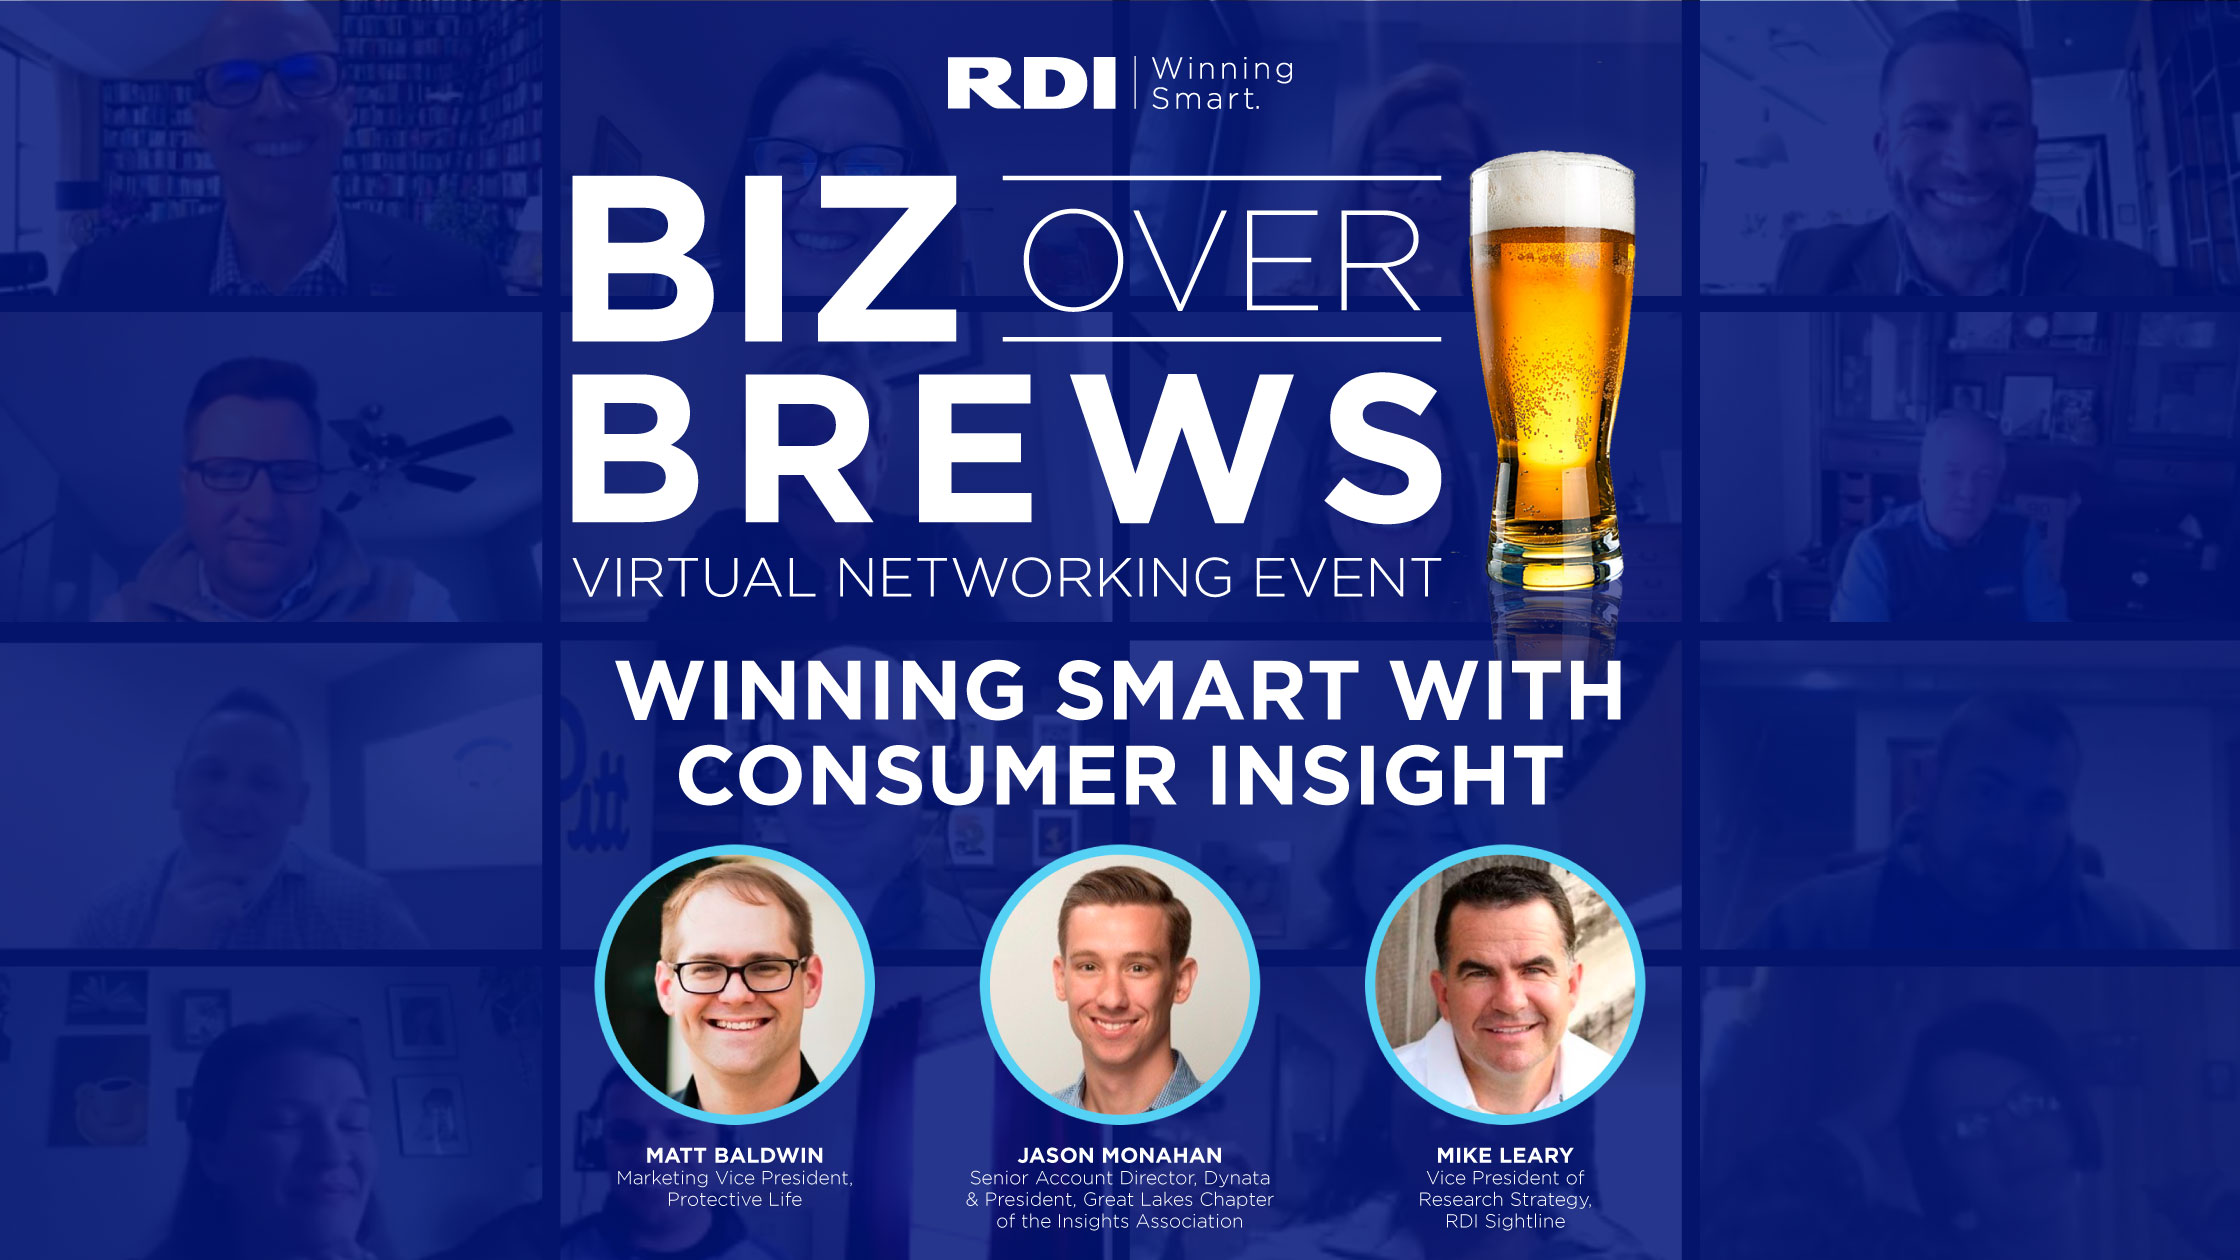 RDI Corporation - Biz Over Brews - Winning Smart with Consumer Insights